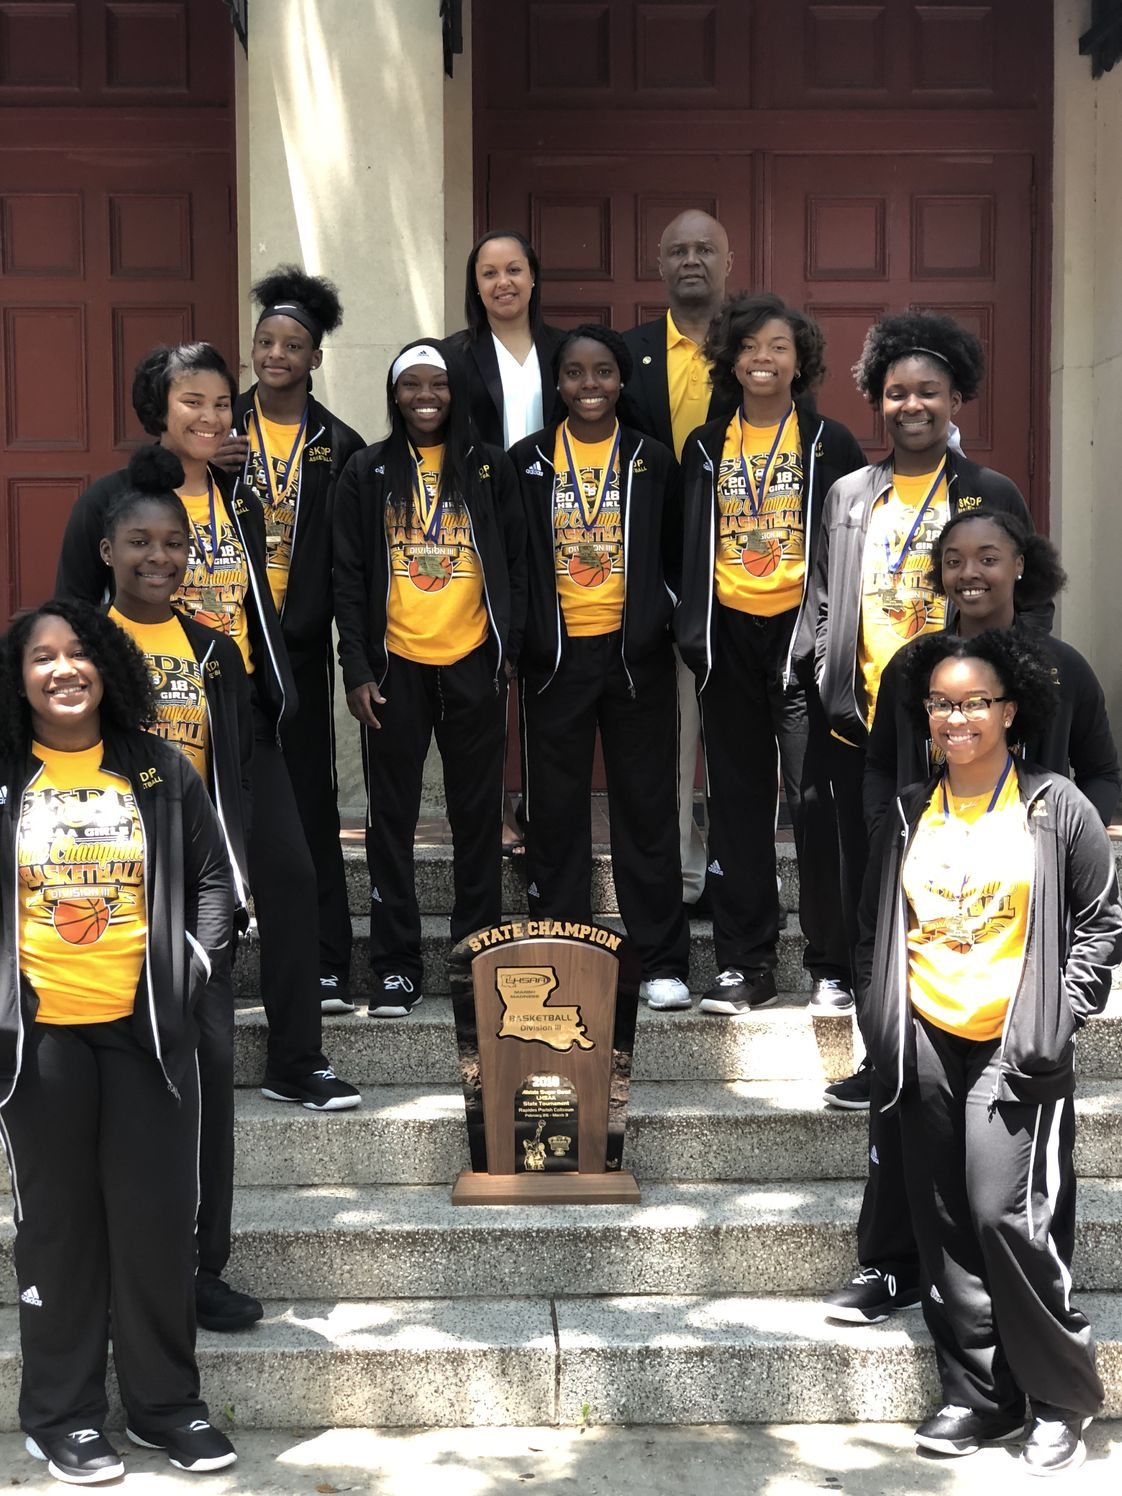 St. Katharine Drexel Preparatory School Photo #1 - 2018 Basketball State Champions